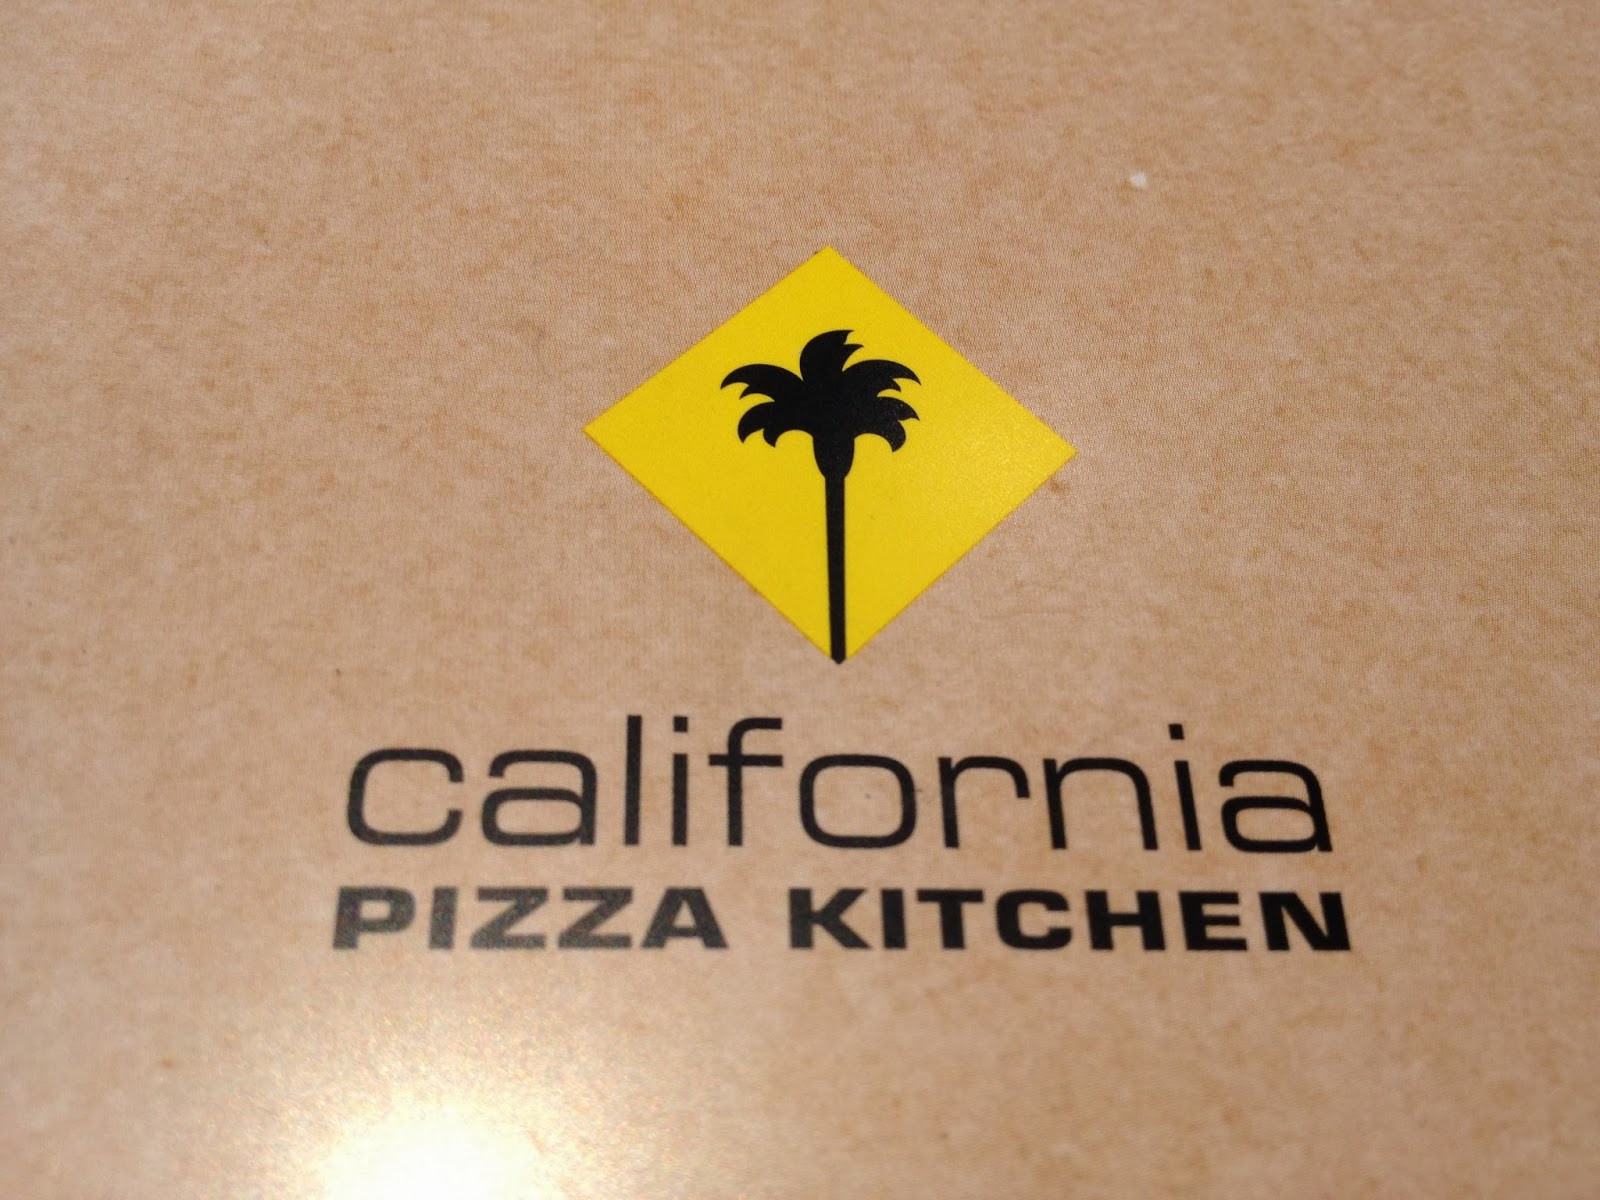 patty and david said california pizza kitchen